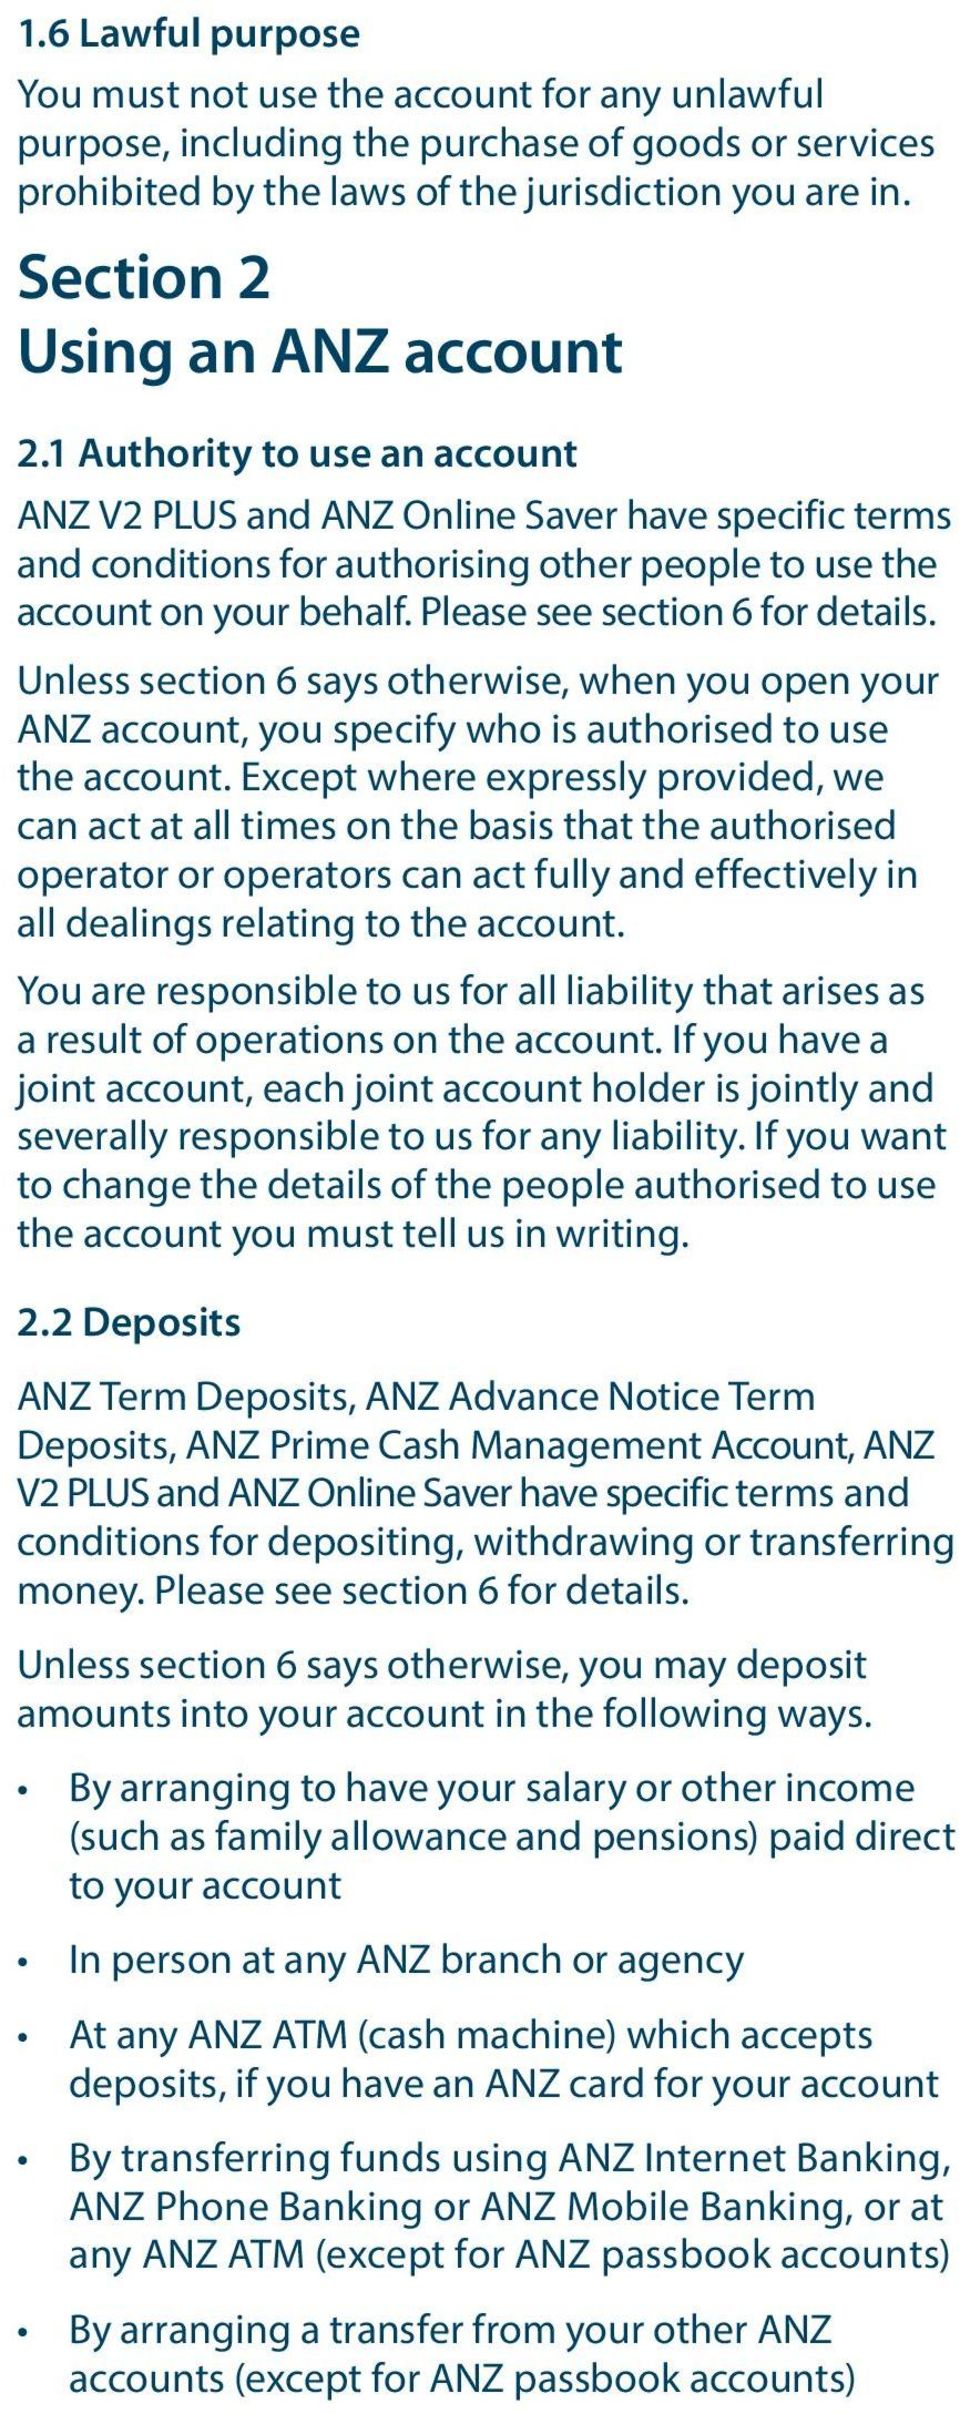 Please see section 6 for details. Unless section 6 says otherwise, when you open your ANZ account, you specify who is authorised to use the account.